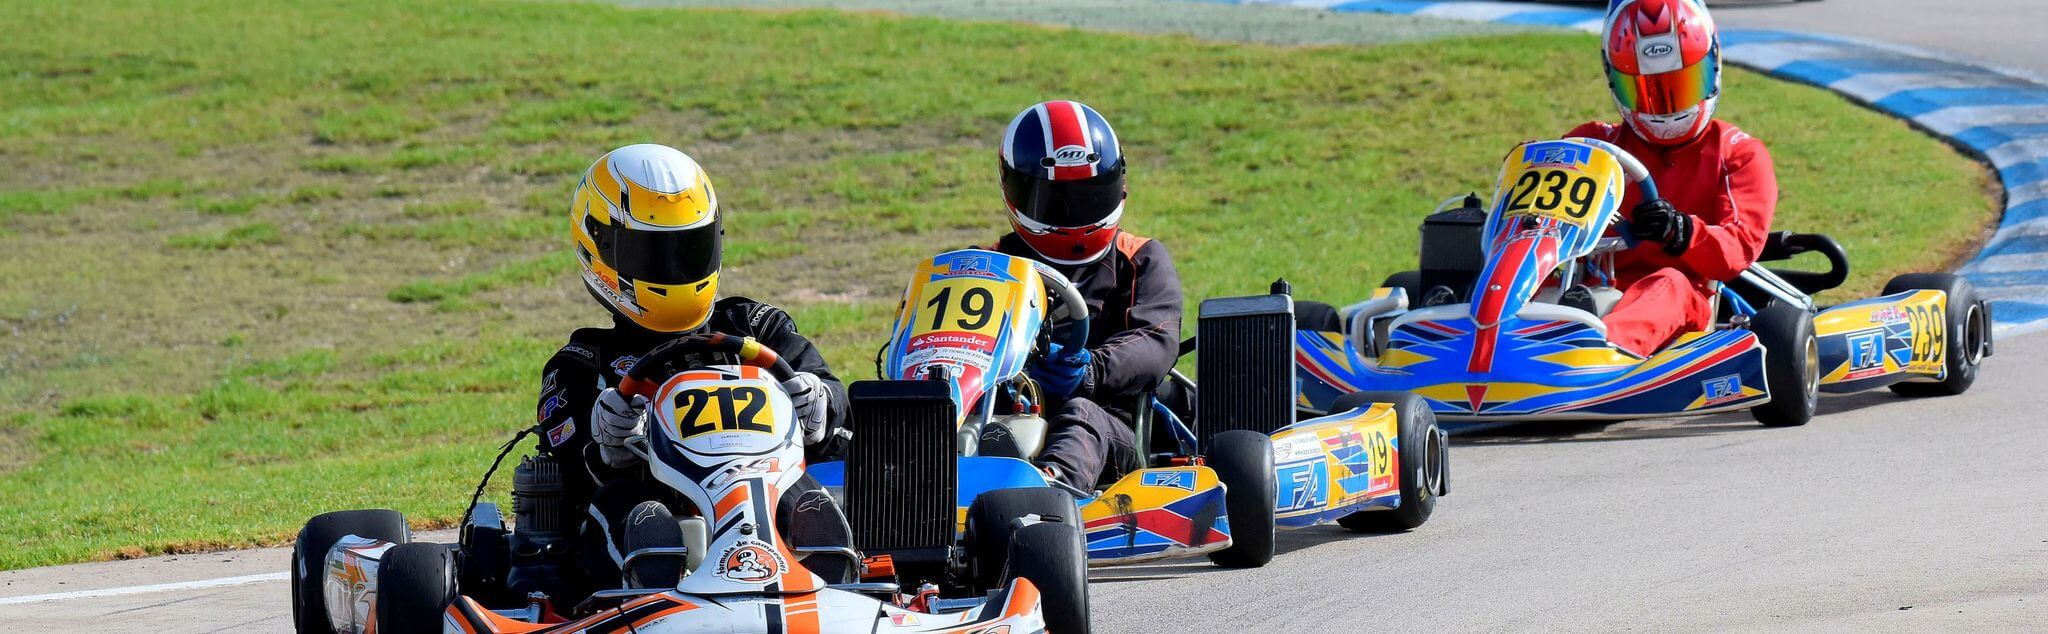 Karting in Carballo (Carballo)